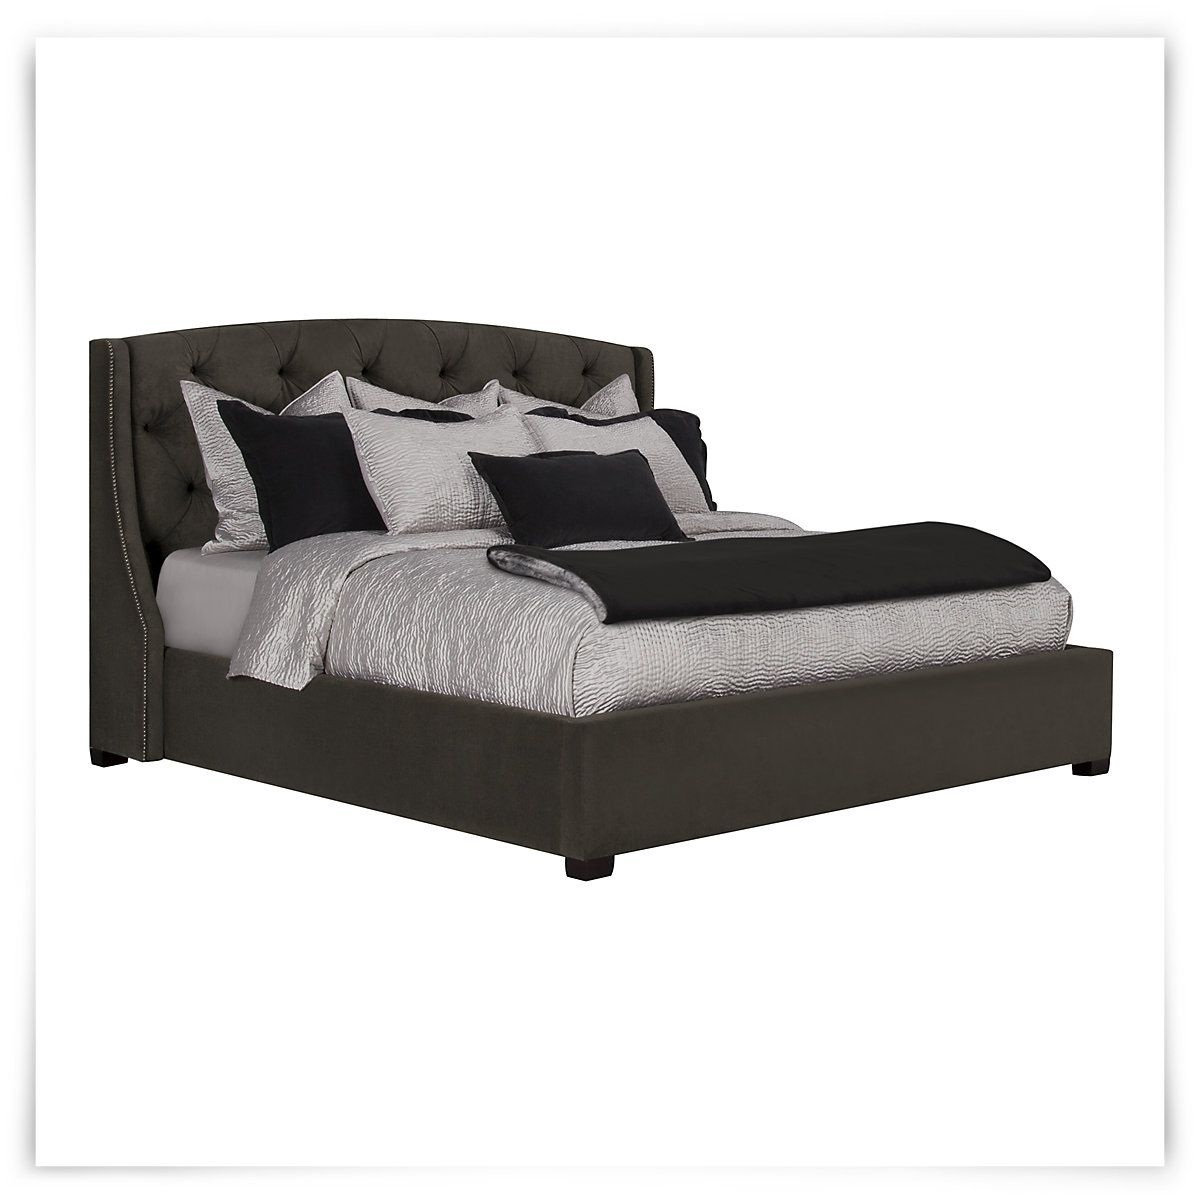 jordan dk gray upholstered platform bed guest bedroom pinterest